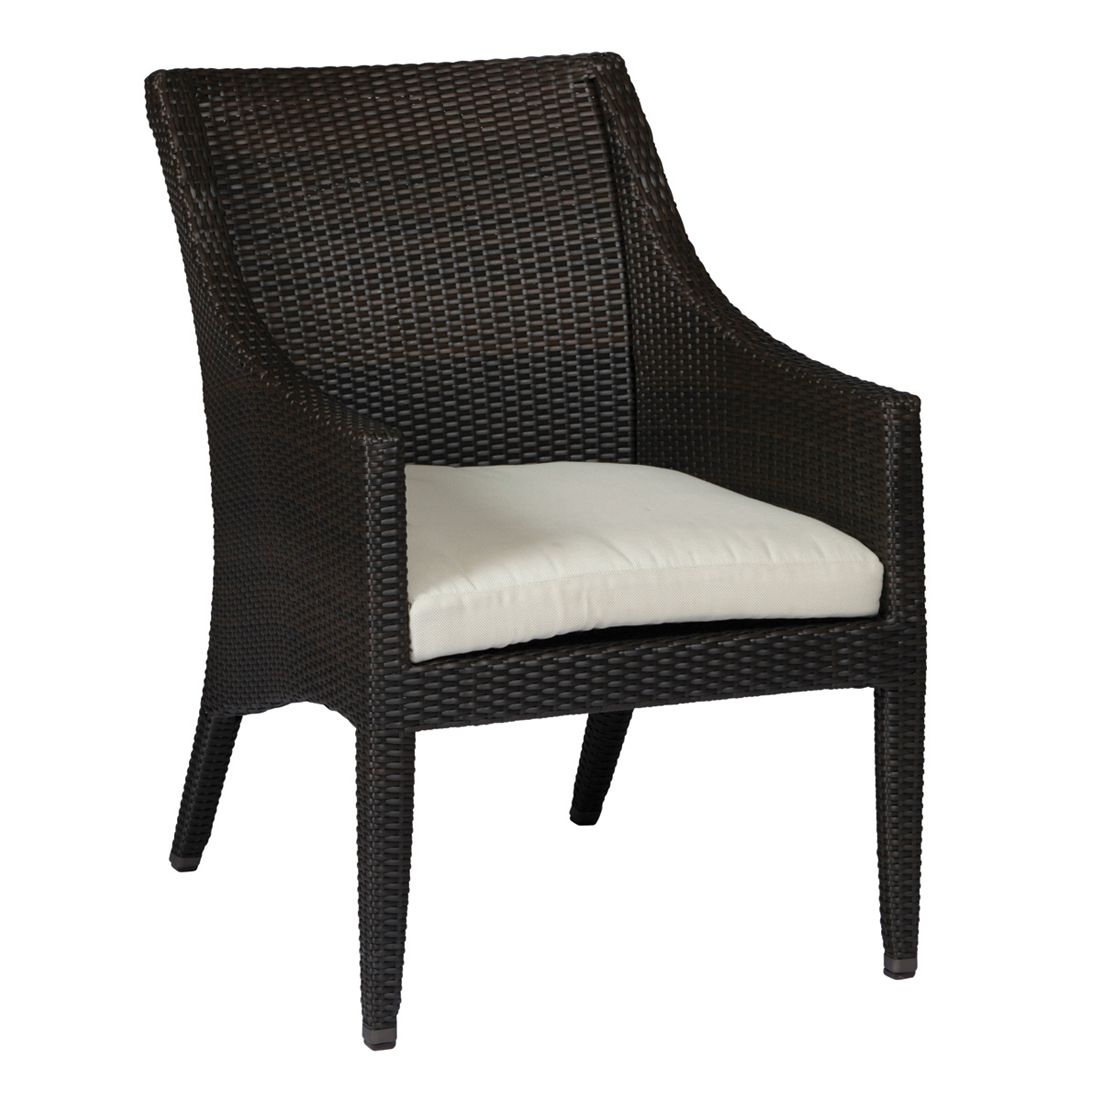 Excellent Athena Outdoor Wicker Lounge Chair Luxury And Style Pabps2019 Chair Design Images Pabps2019Com